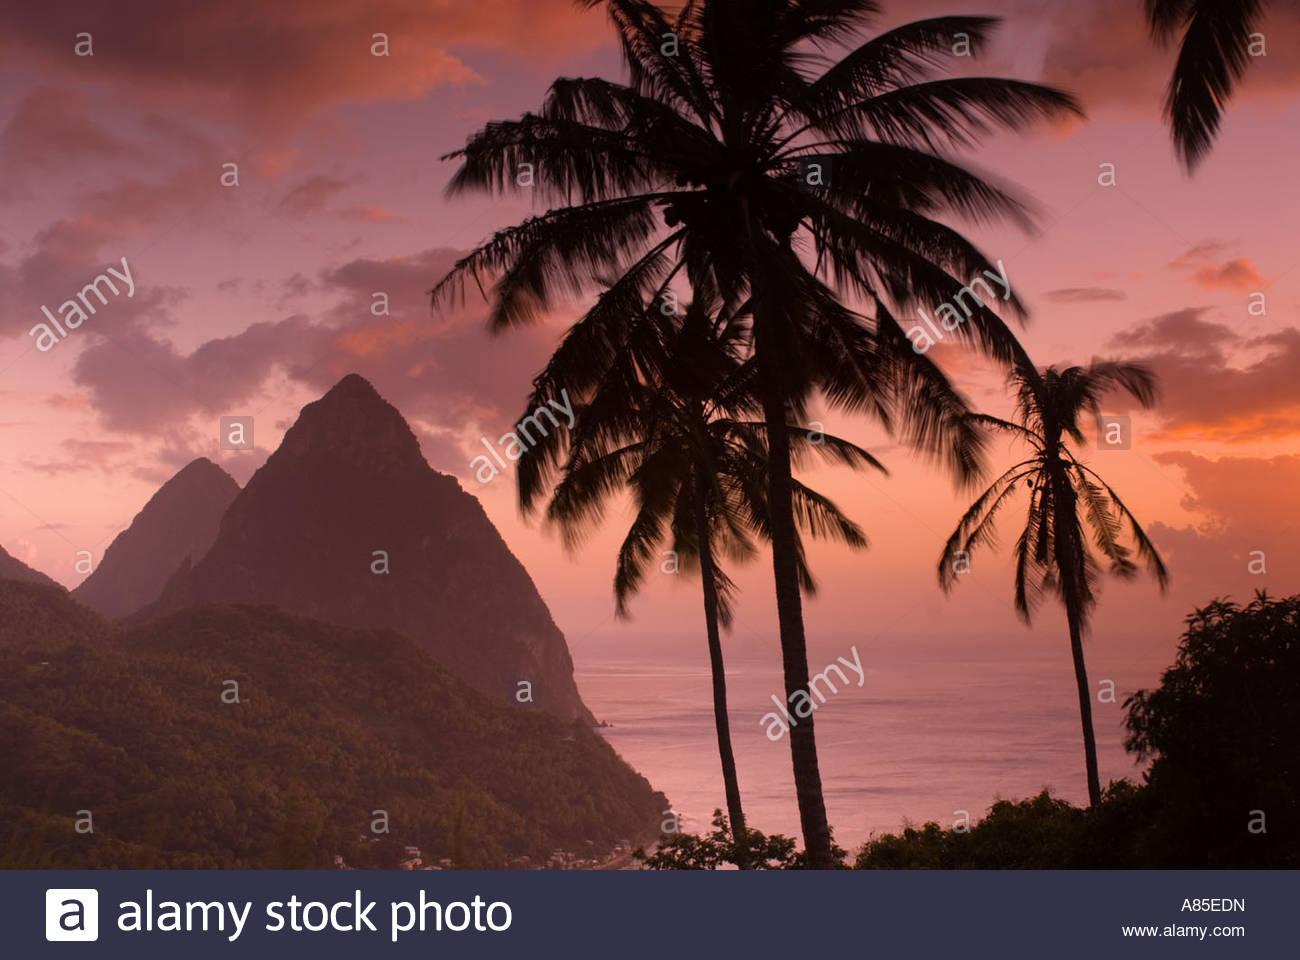 The Pitons at sunset, St Lucia, Windward Islands, Caribbean - Stock Image